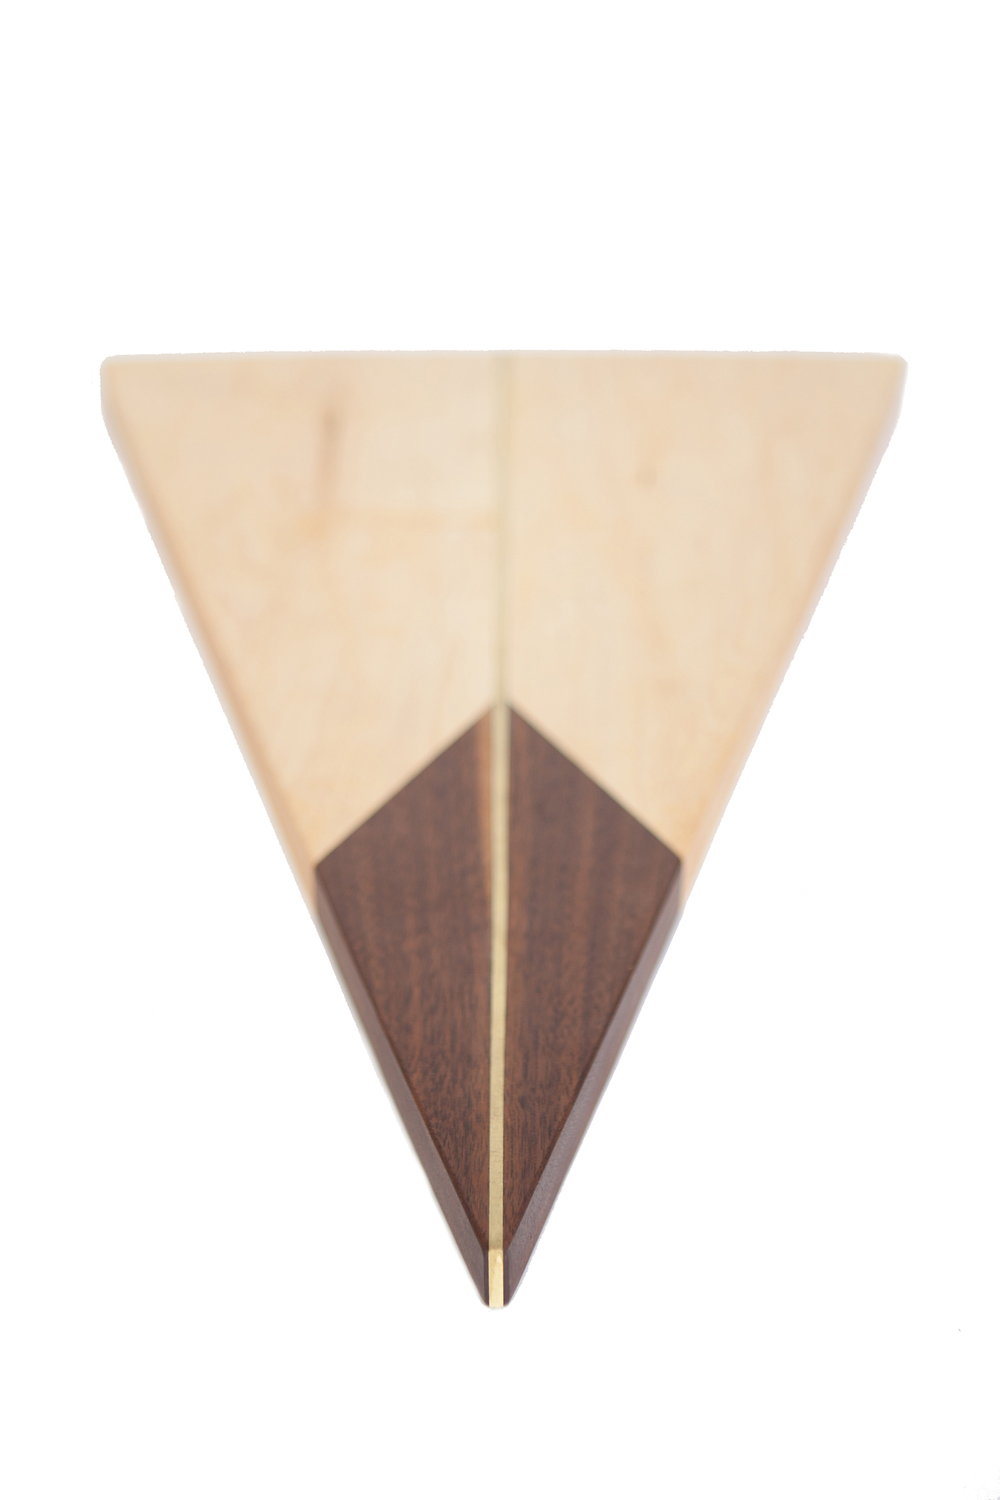 Chris earl triangle cheeseboard 2